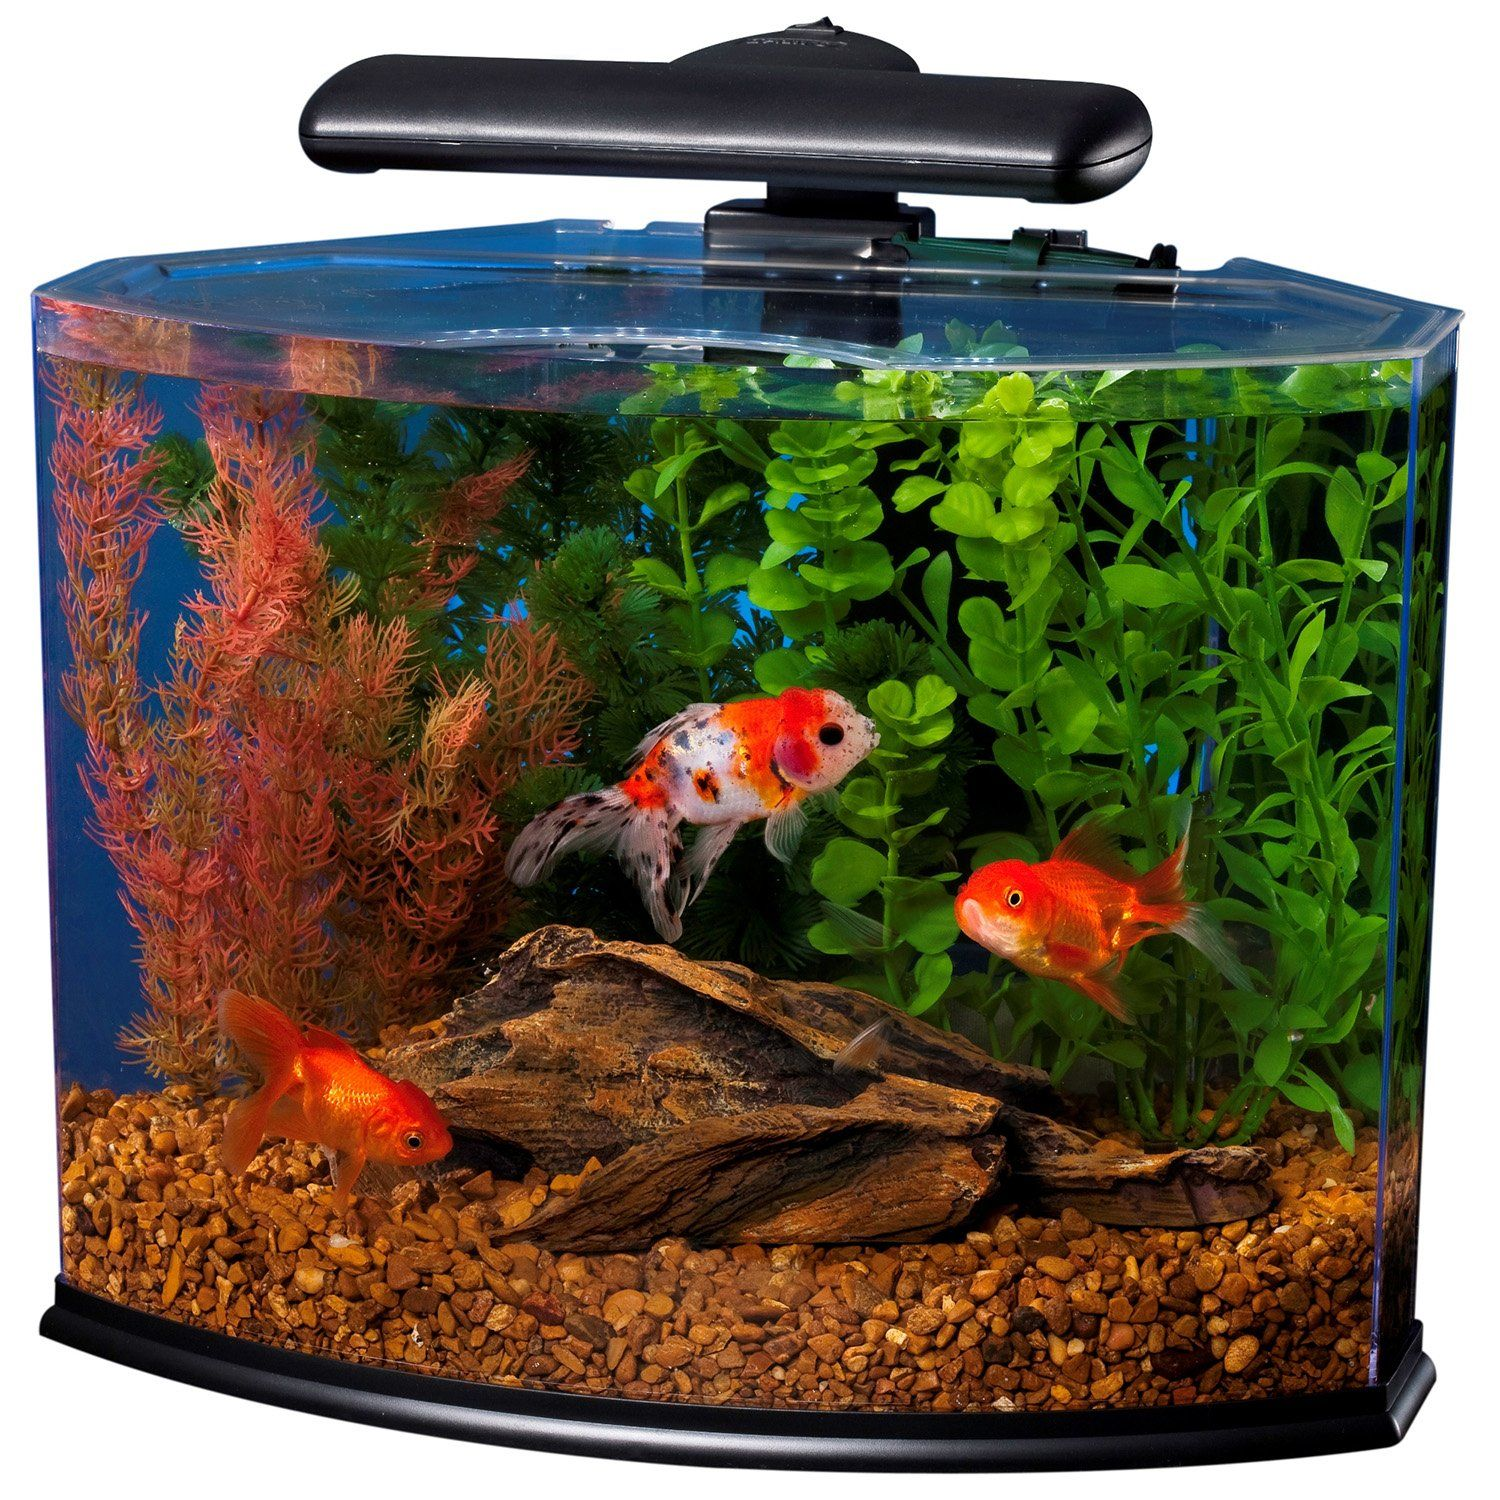 Aquarium fish tank starter kit - Tetra Crescent Desktop Aquarium Kit Petco Store Betta Fish Tankfish